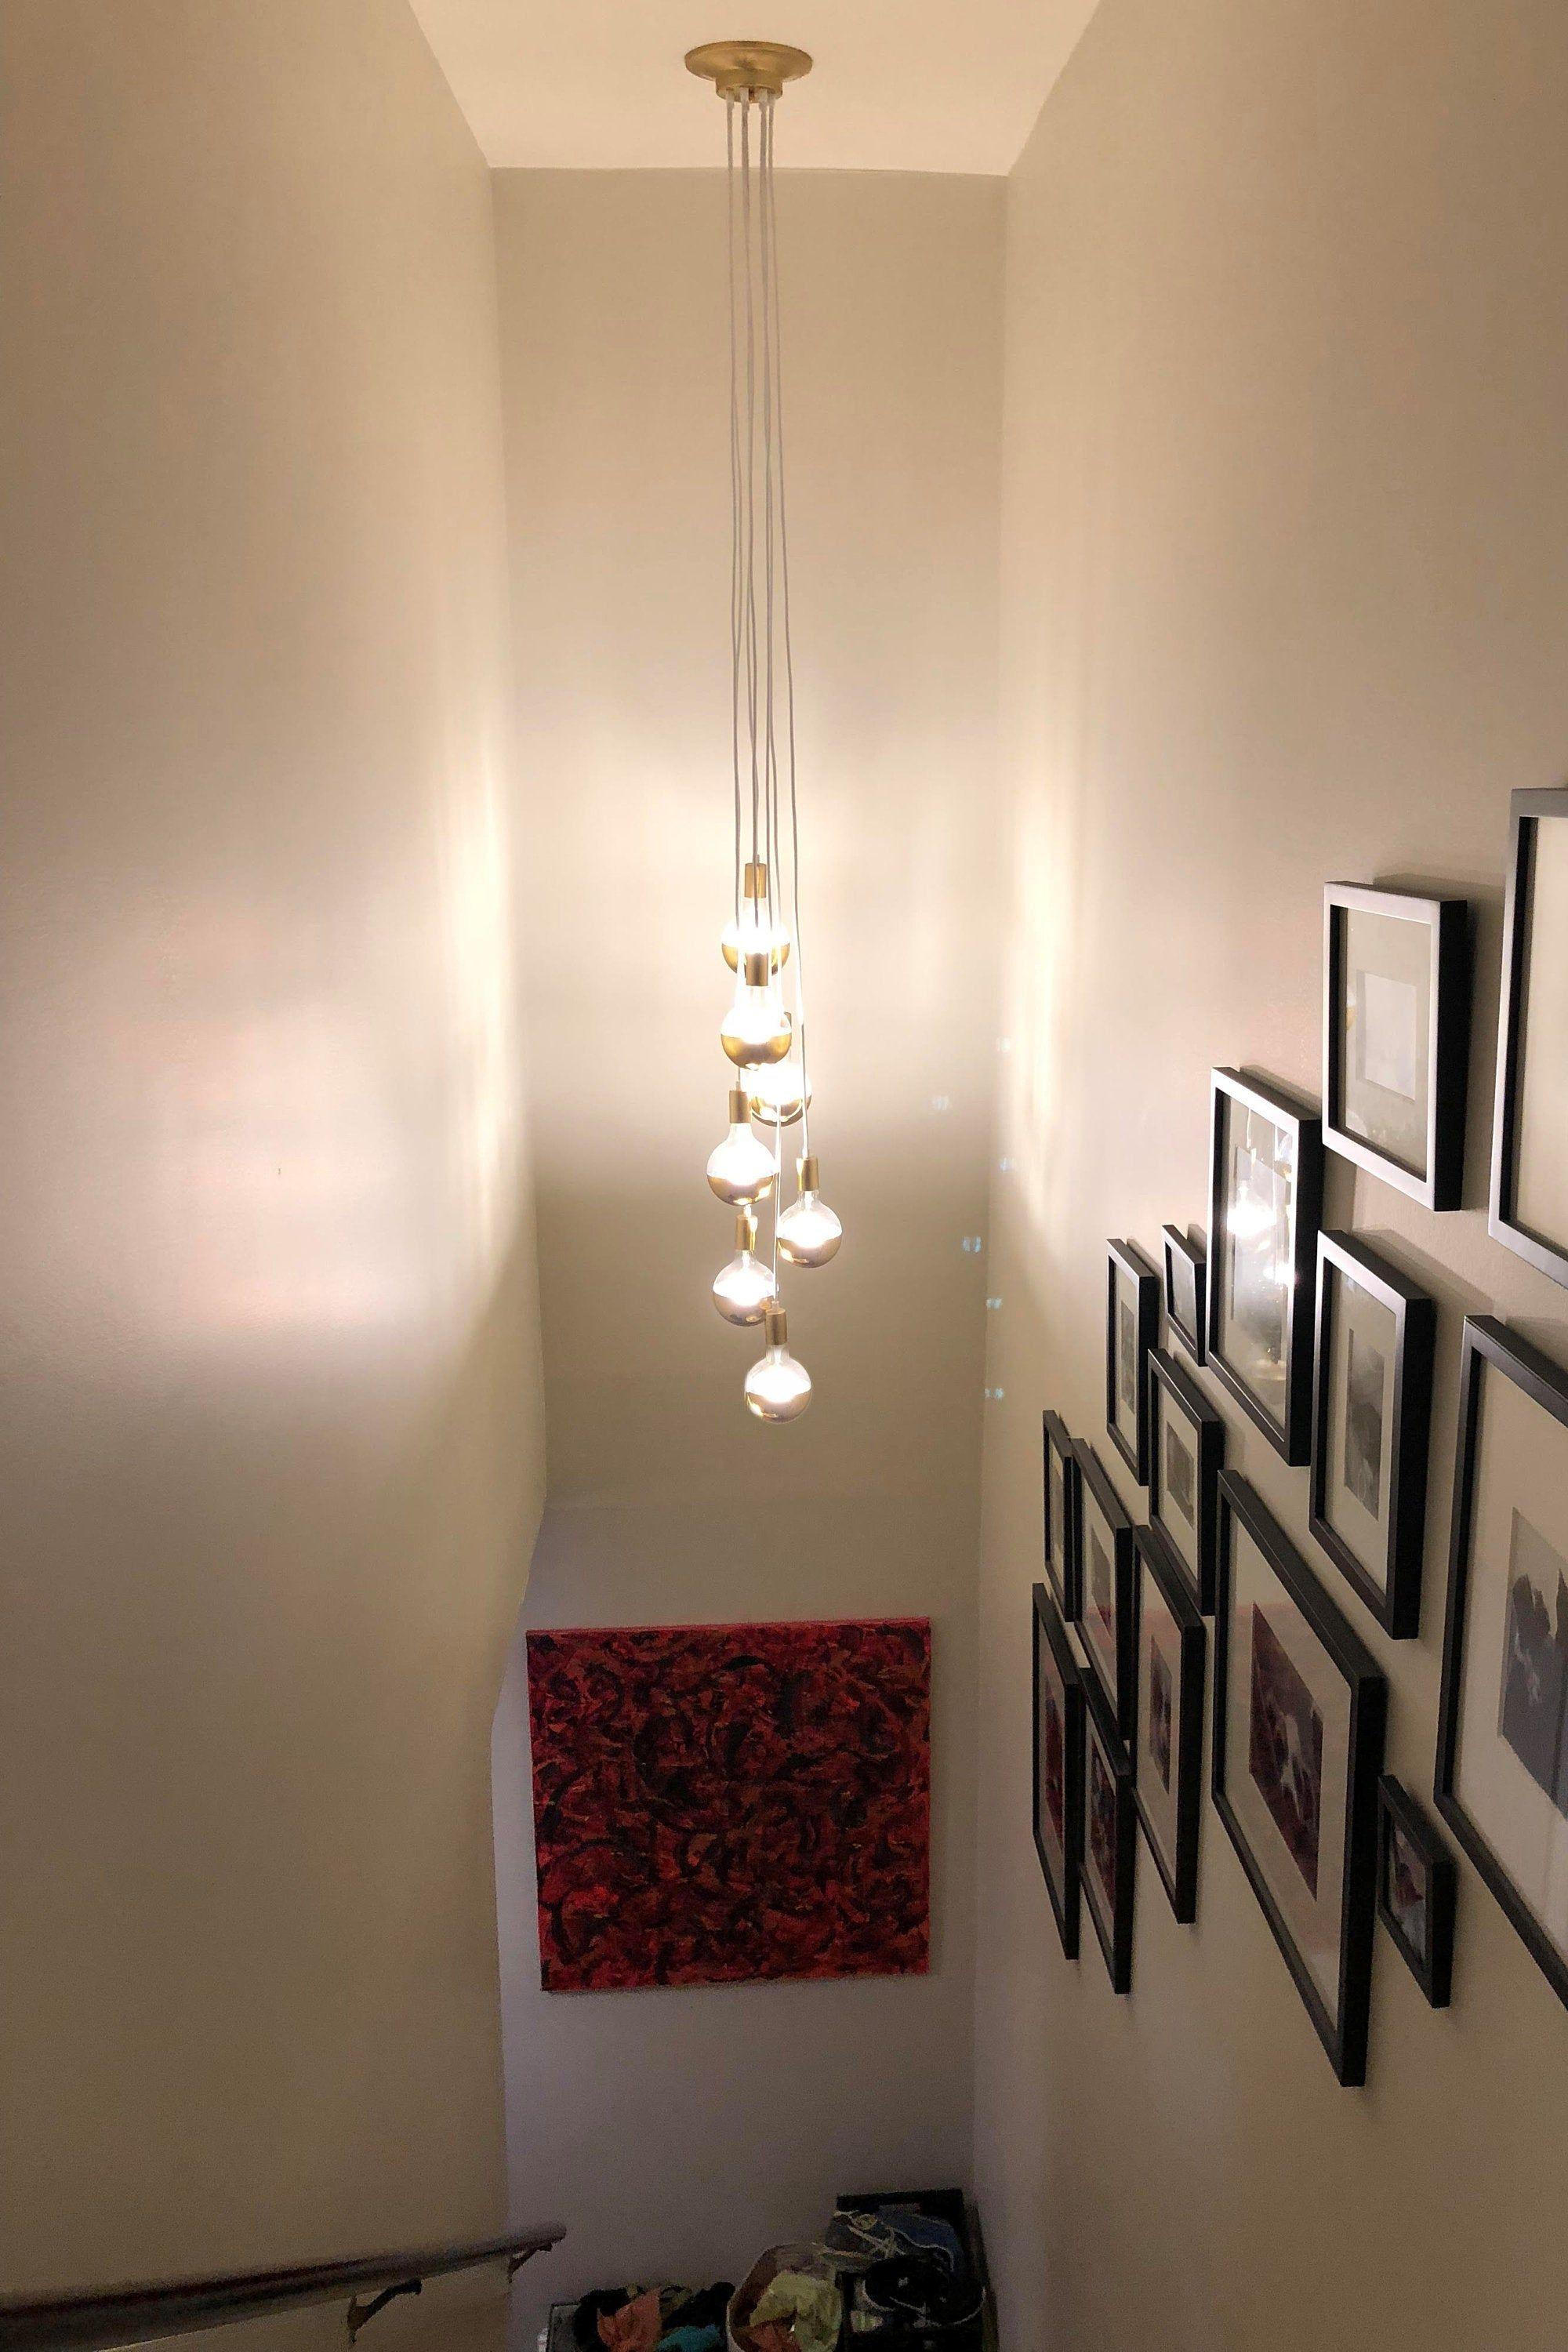 Stairway Chandelier Long Cascading Foyer Lighting 7 Cluster Hanging Pendant Lighting Modern Chandelier Cloth Cords Copper Dipped Led Globes With Images Stairway Lighting Foyer Pendant Lighting Hallway Lighting